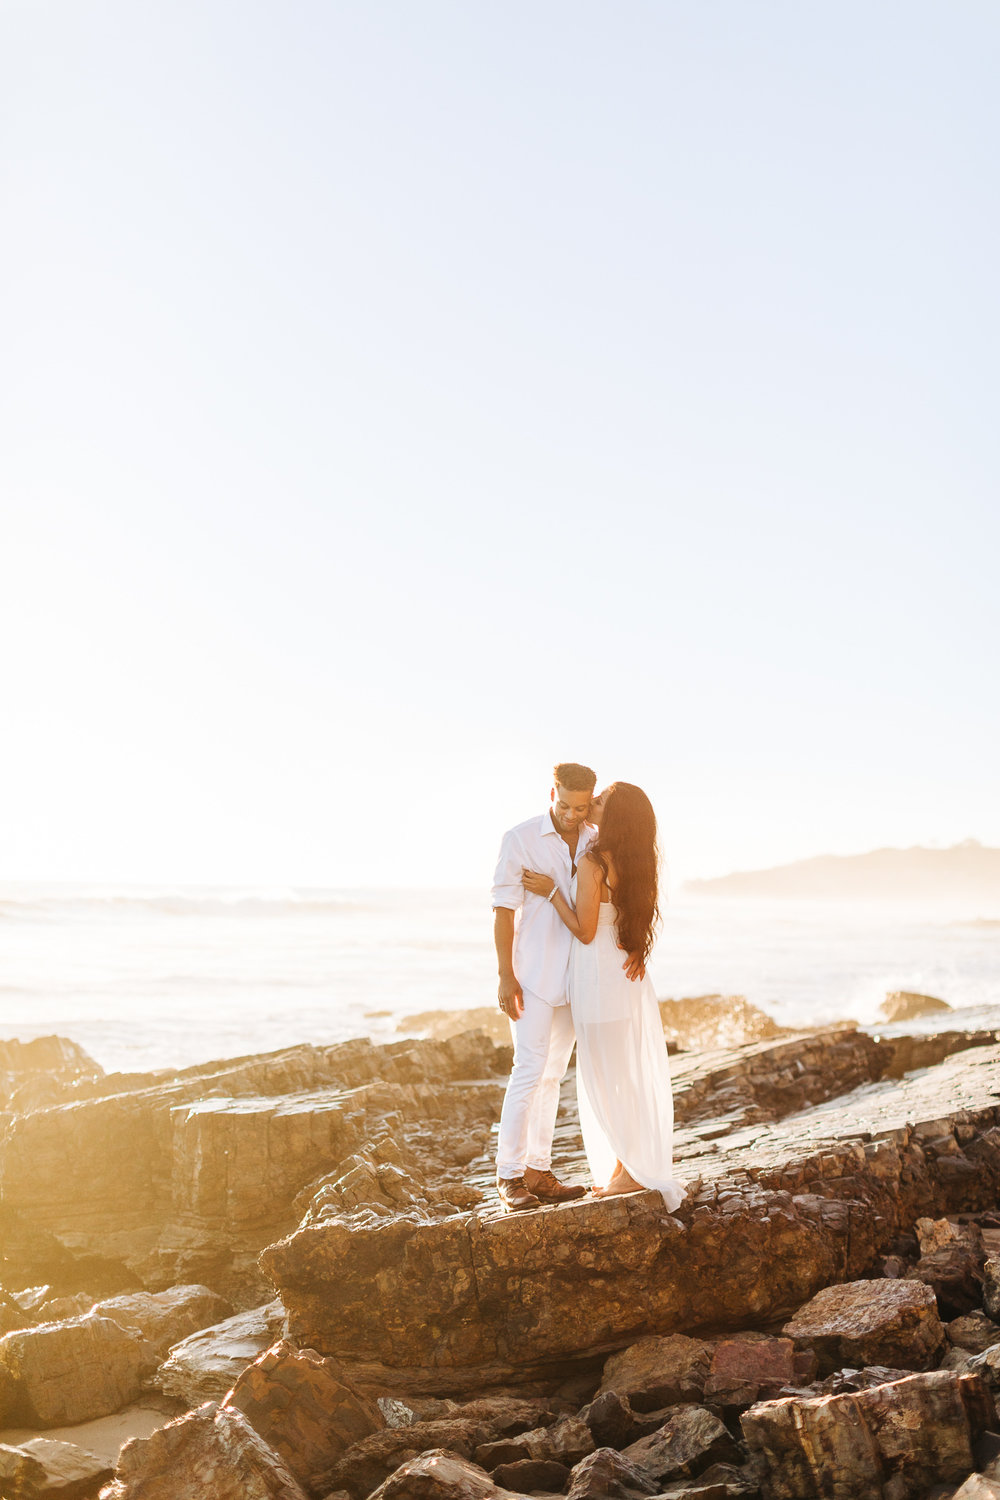 Nanis&Jay-Crystal-Cove-Beach-Engagement-Session-Clarisse-Rae-Photo-&-Video-Orange-County-Wedding-Photographer-&-Videographer_48.jpg